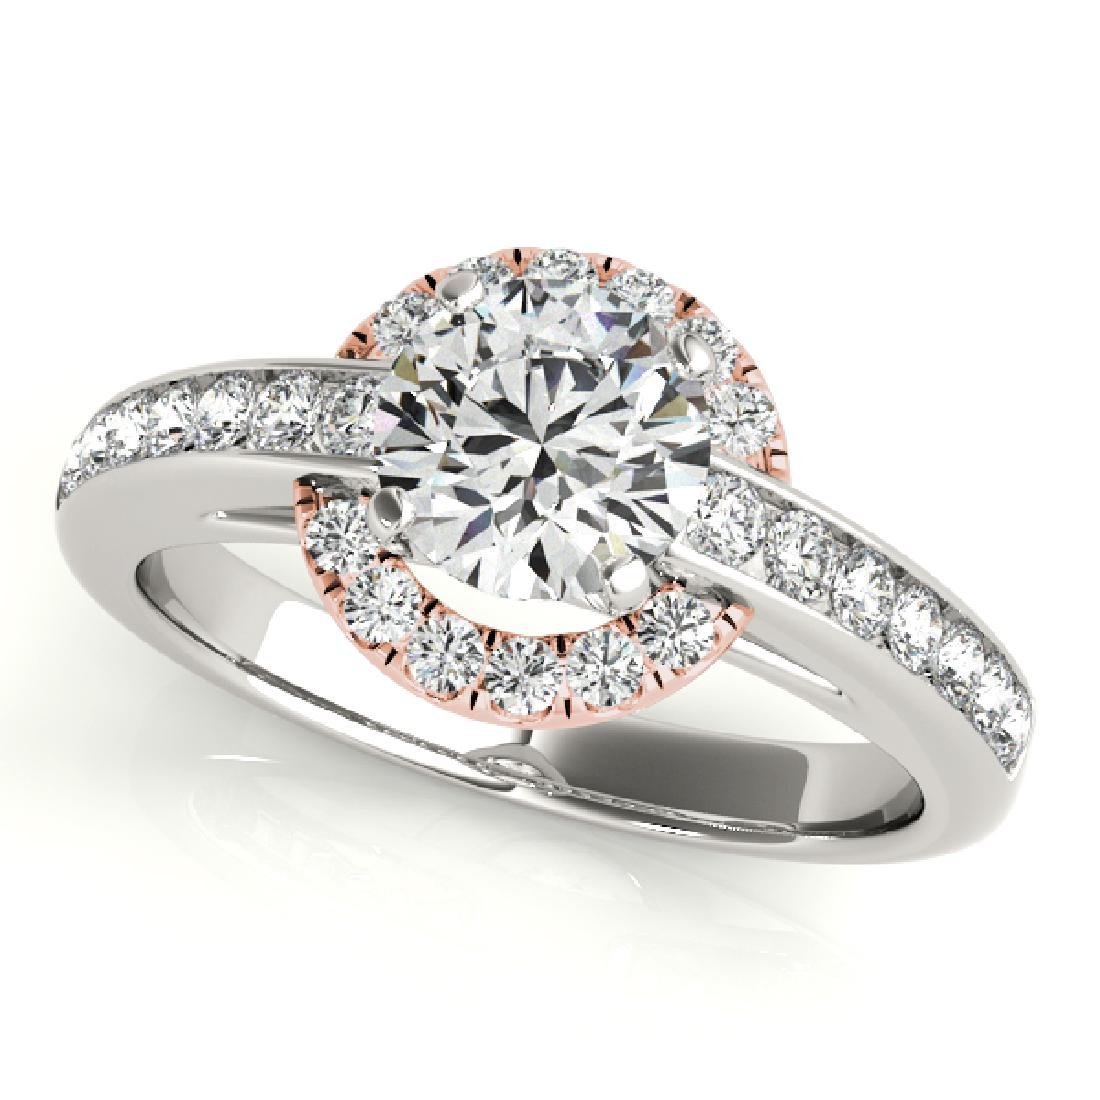 CERTIFIED TWO TONE GOLD 1.33 CT G-H/VS-SI1 DIAMOND HALO